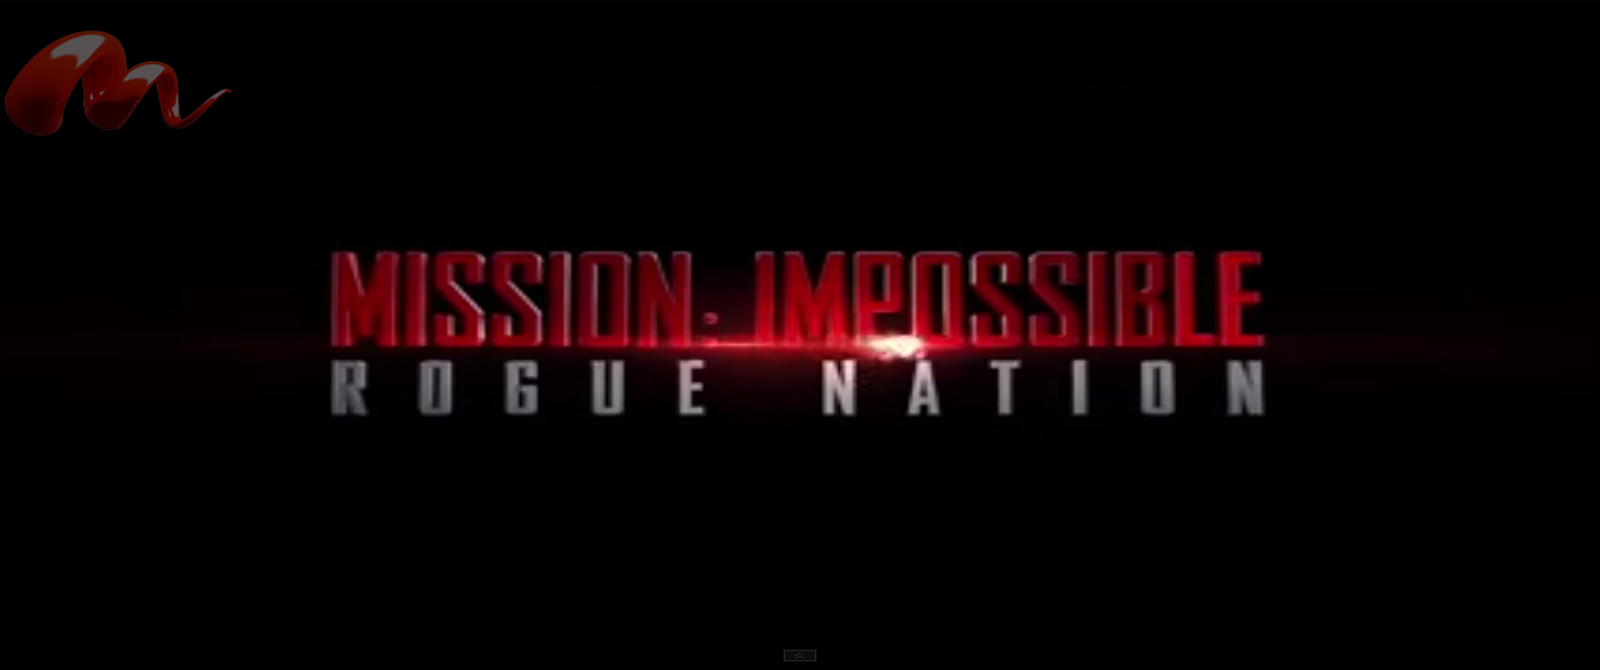 impossible full movie online